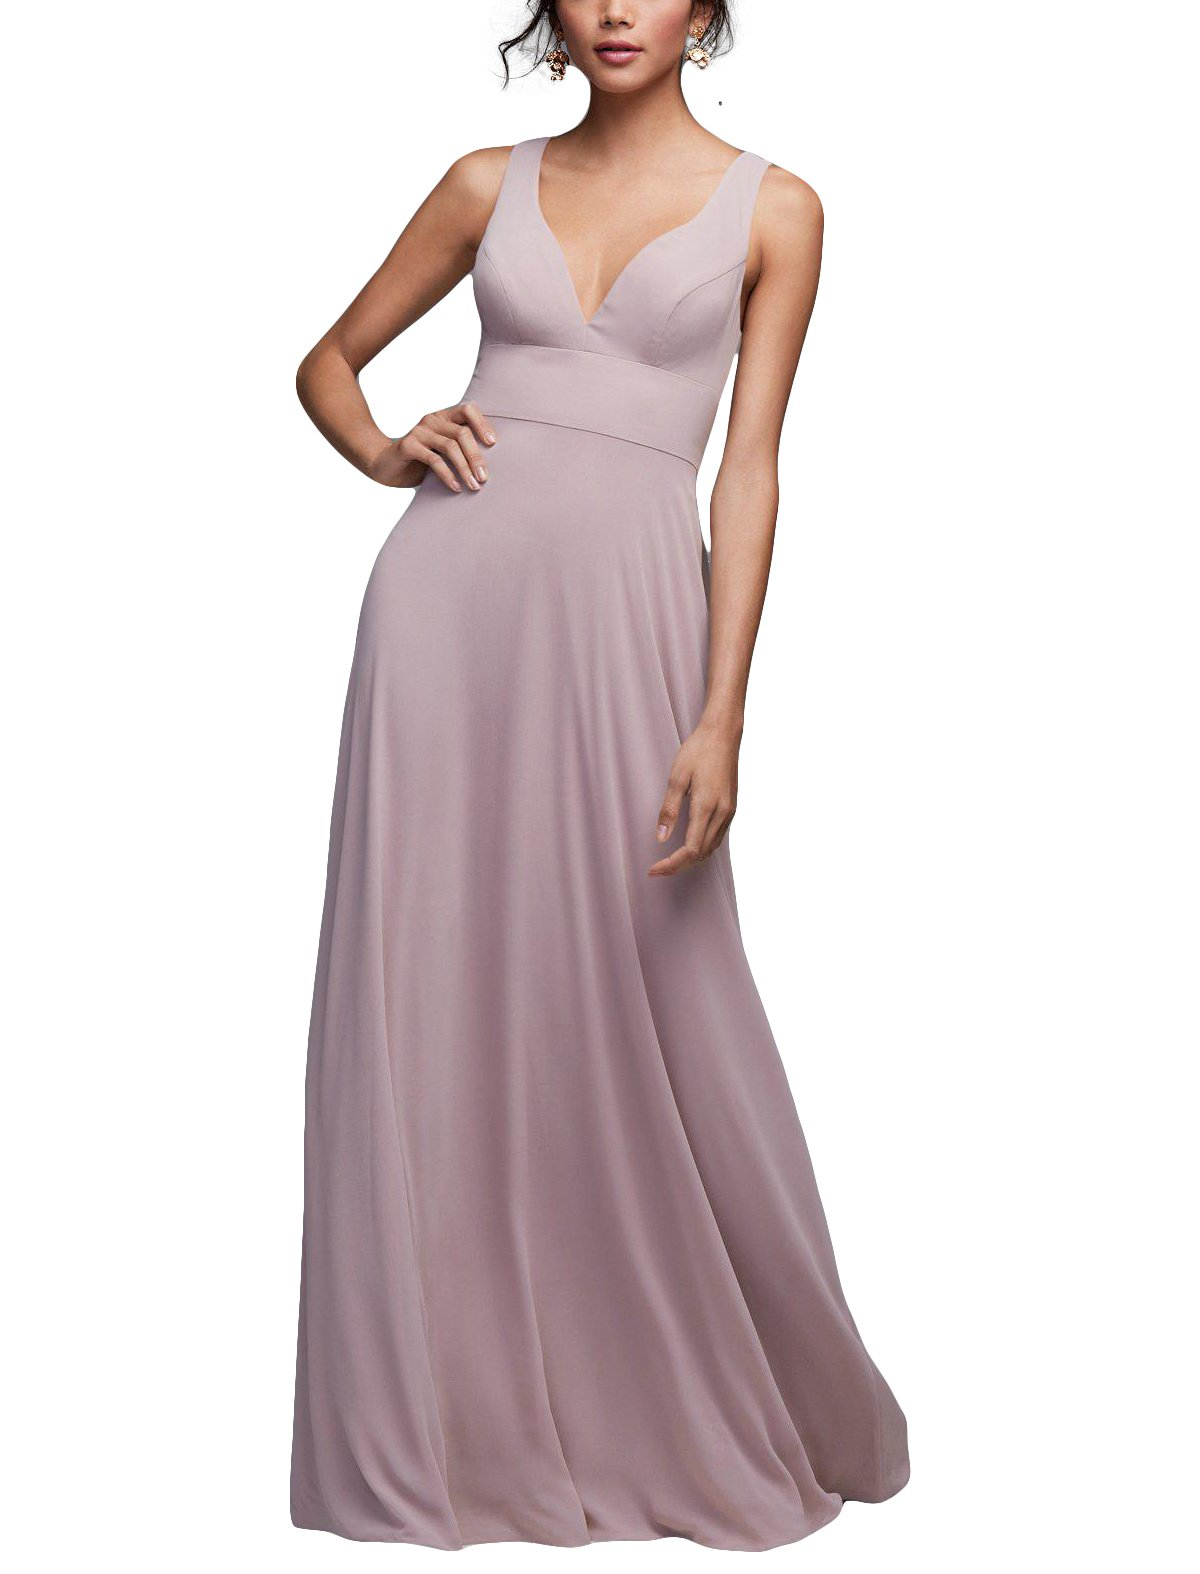 Pink bridesmaid dresses starting at 100 280 styles brideside watters cameo ombrellifo Gallery